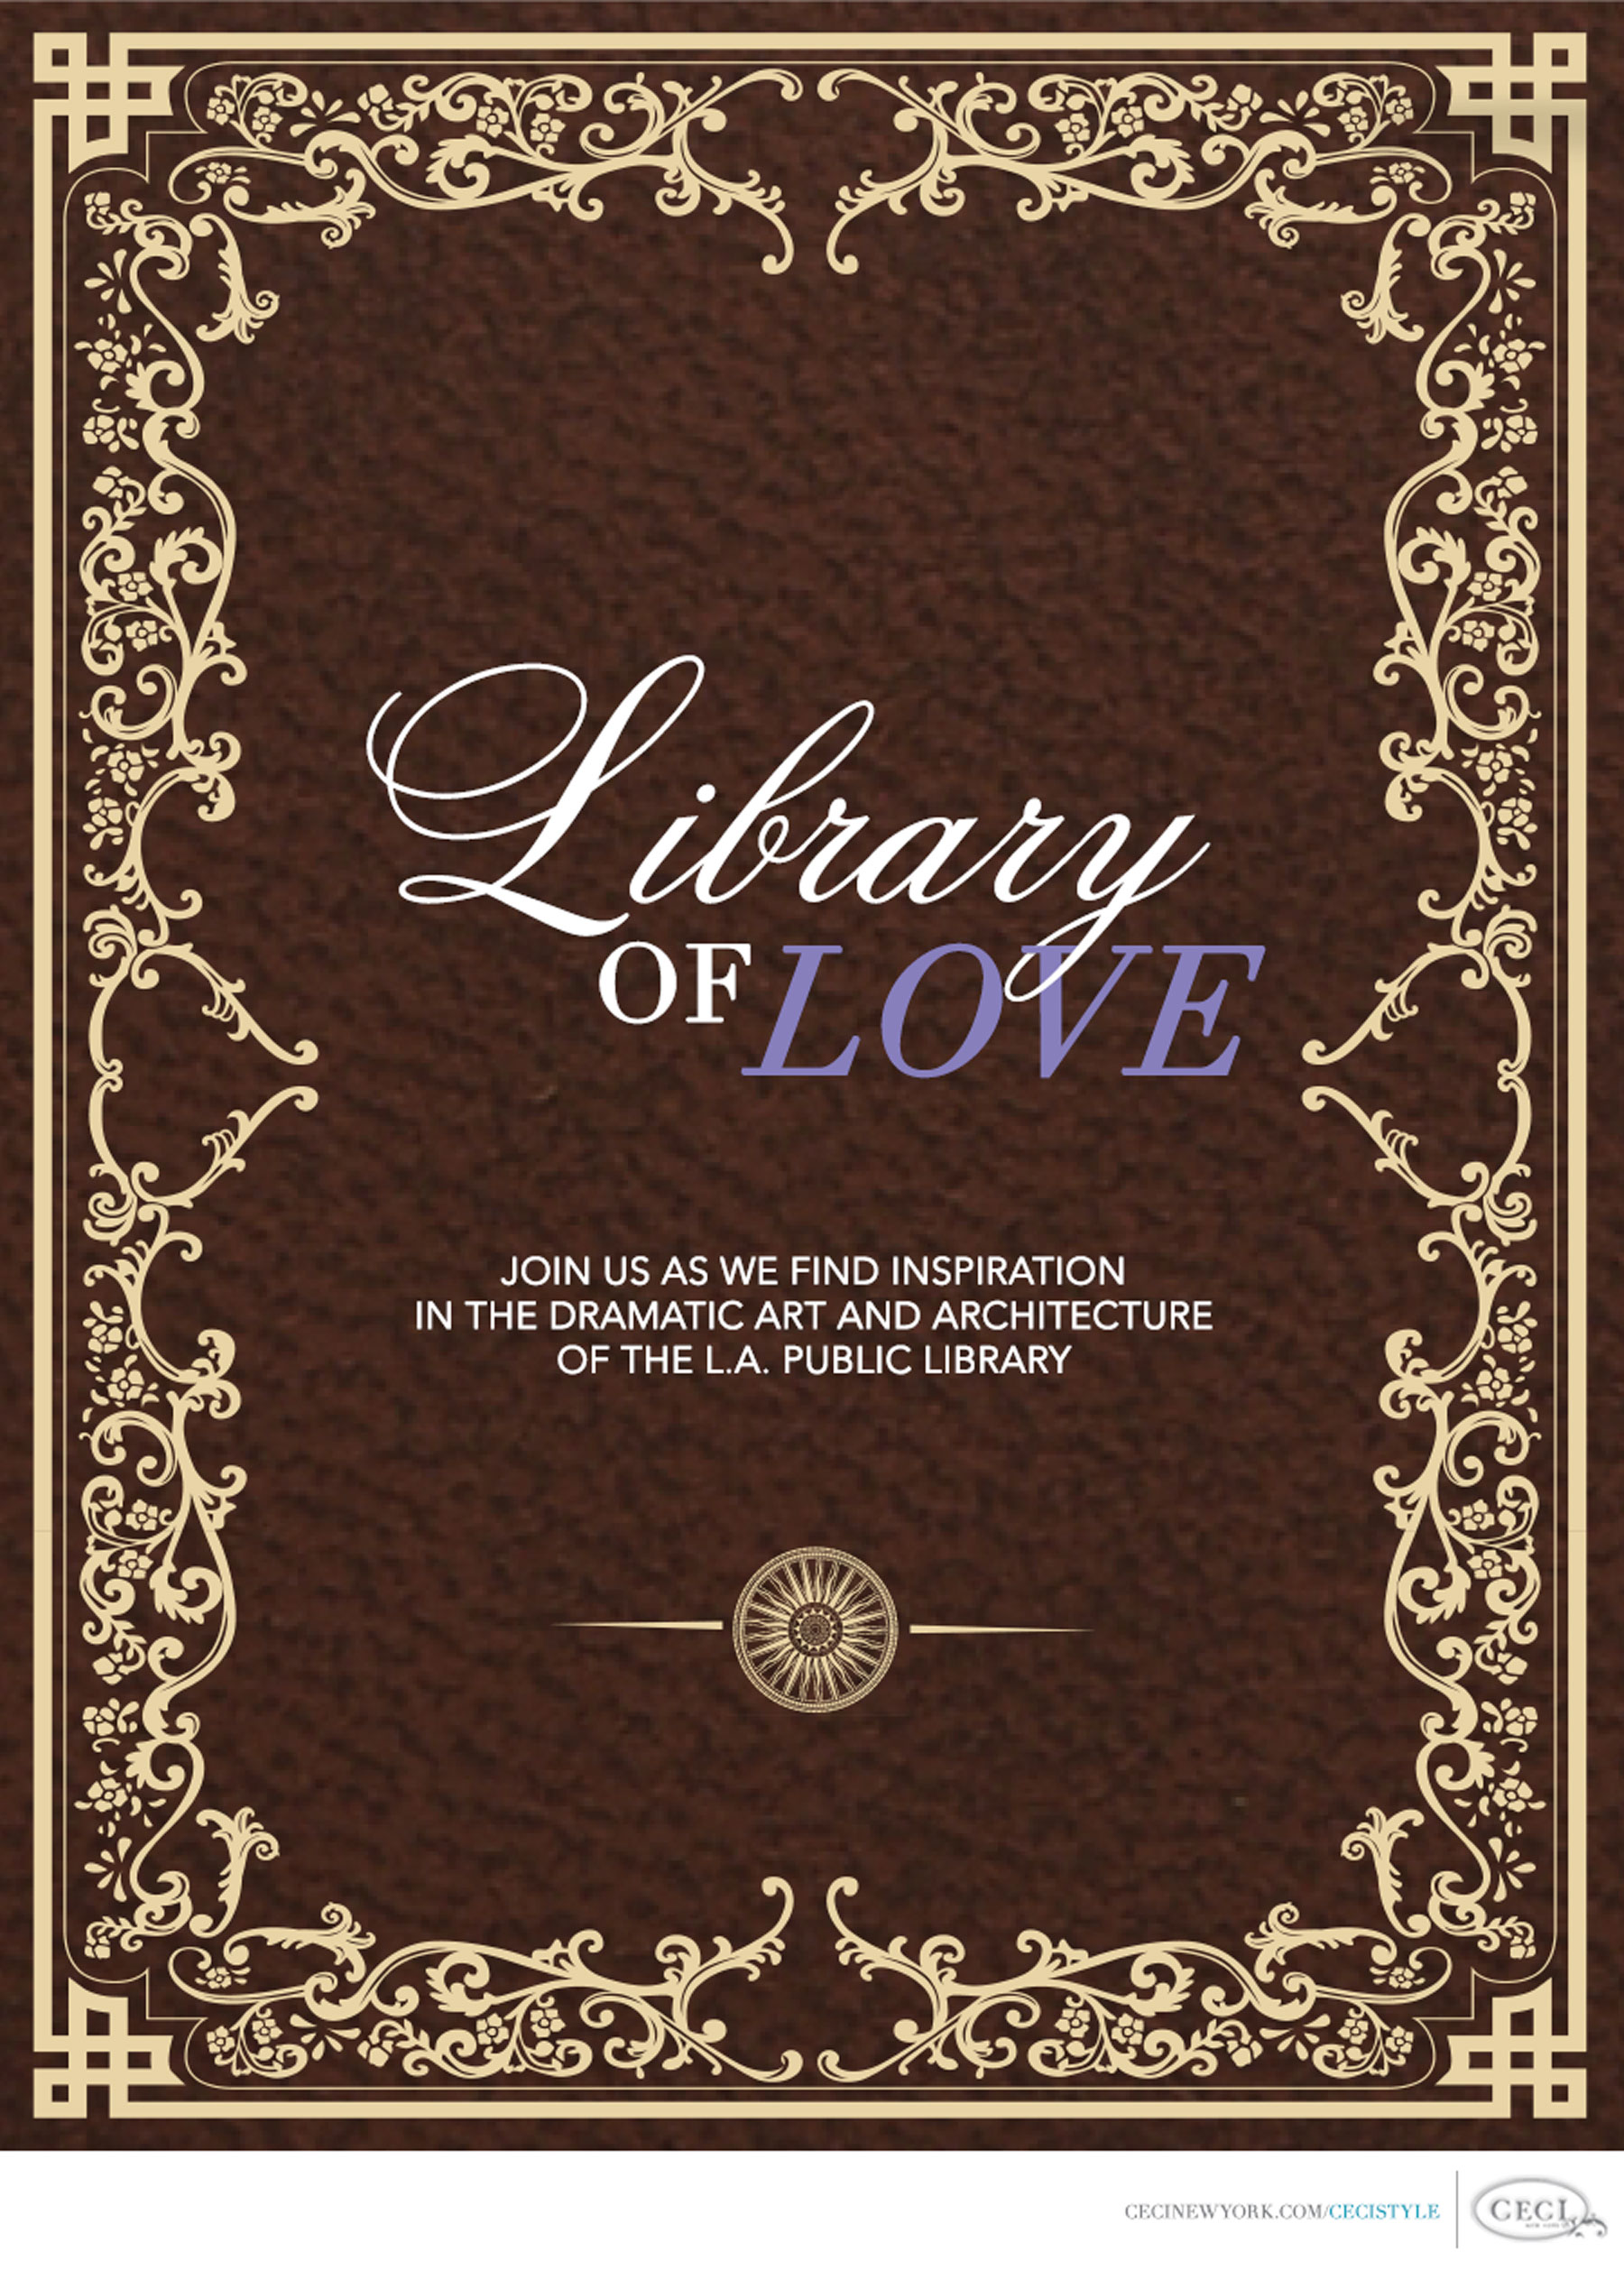 Ceci Johnson of Ceci New York - Library of Love - Join us as we find inspiration in the  dramatic art and architecture